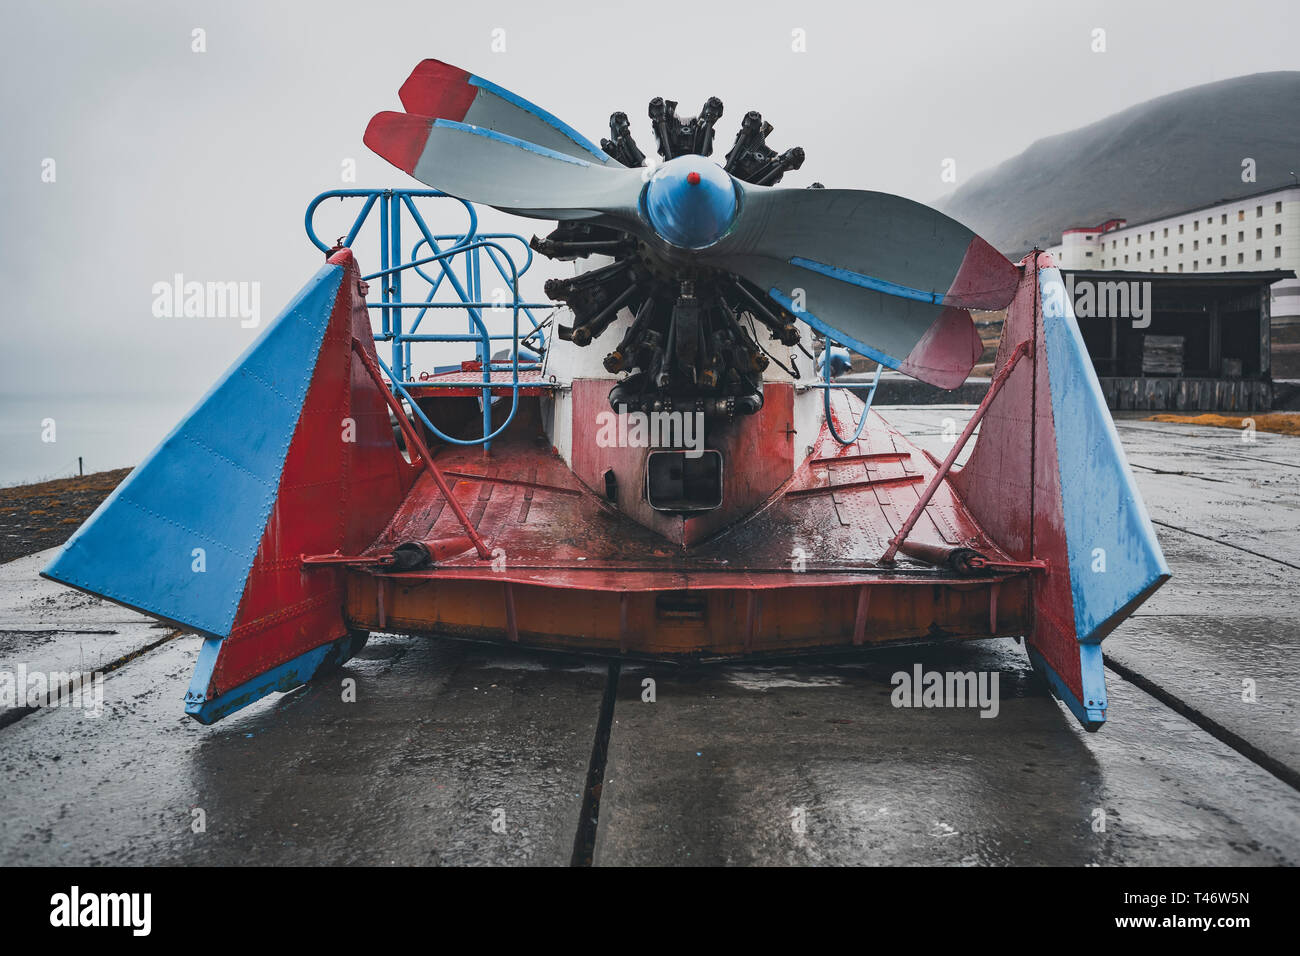 retired old russian radial engine propeller Boat at Barentsburg, Svalbard, Norway - Tupolev A-3 Aerosledge - Stock Image